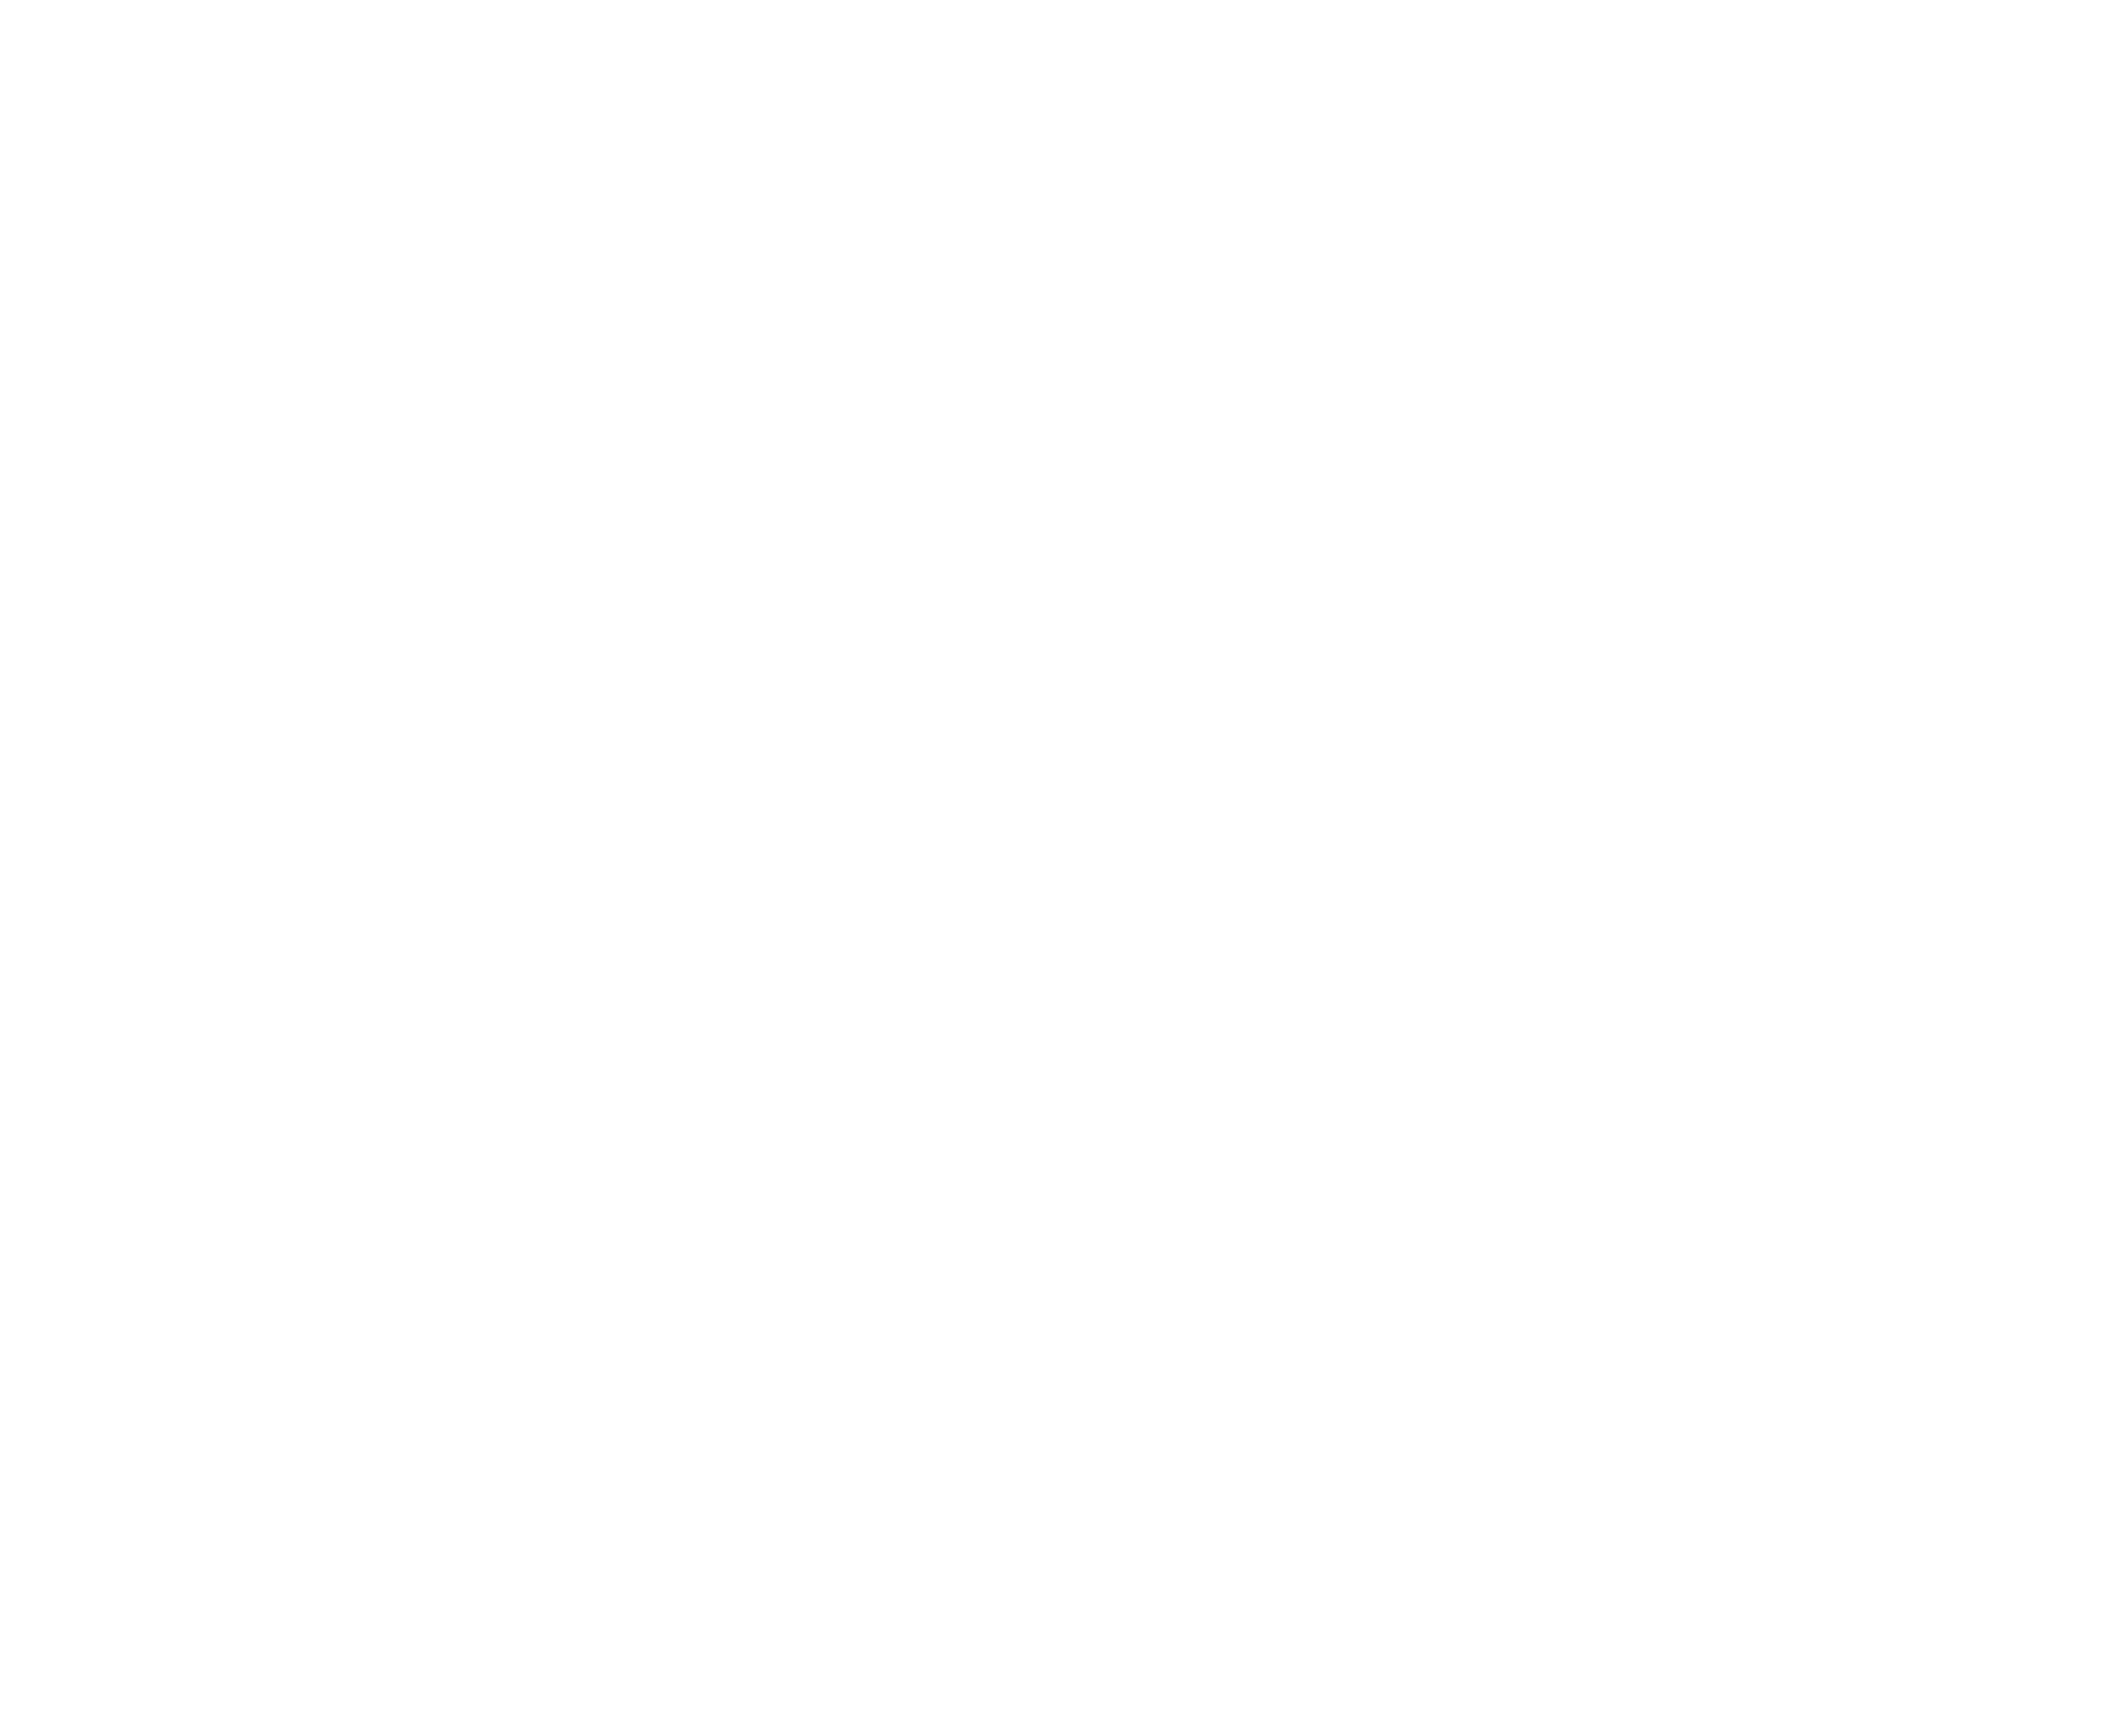 Pro7 Stands